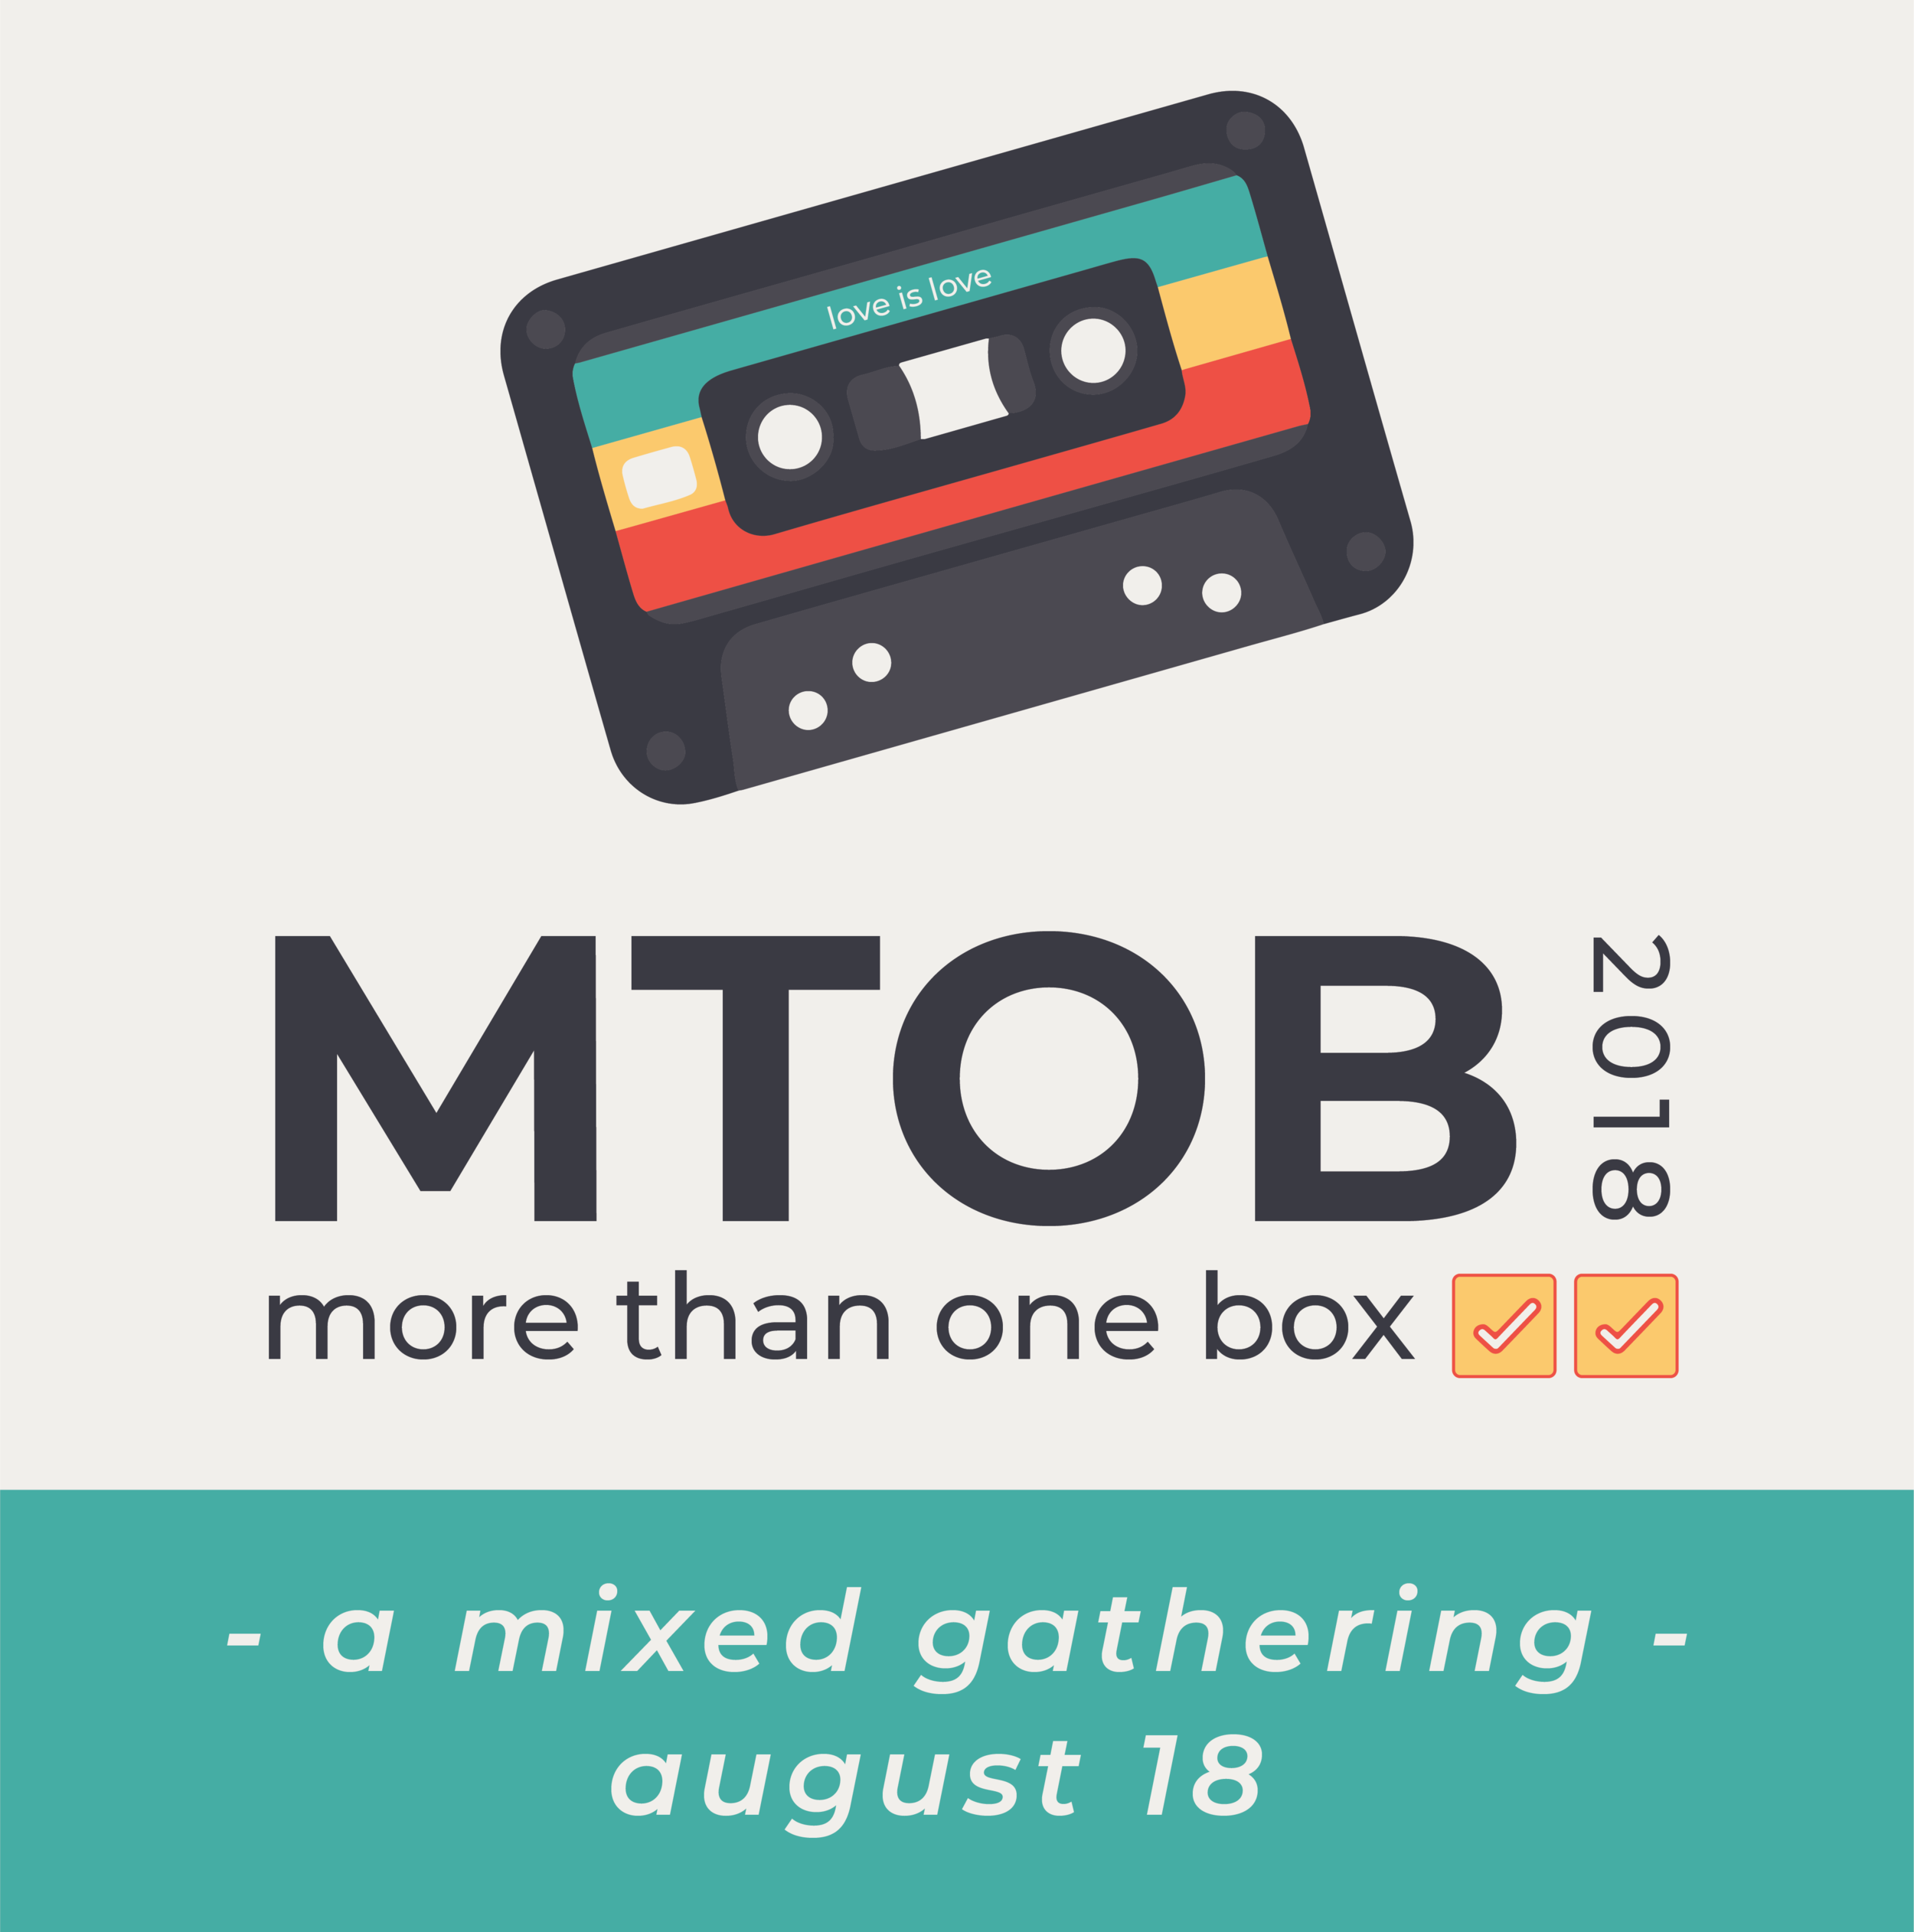 MTOB-Logos-FBsquare-11.png